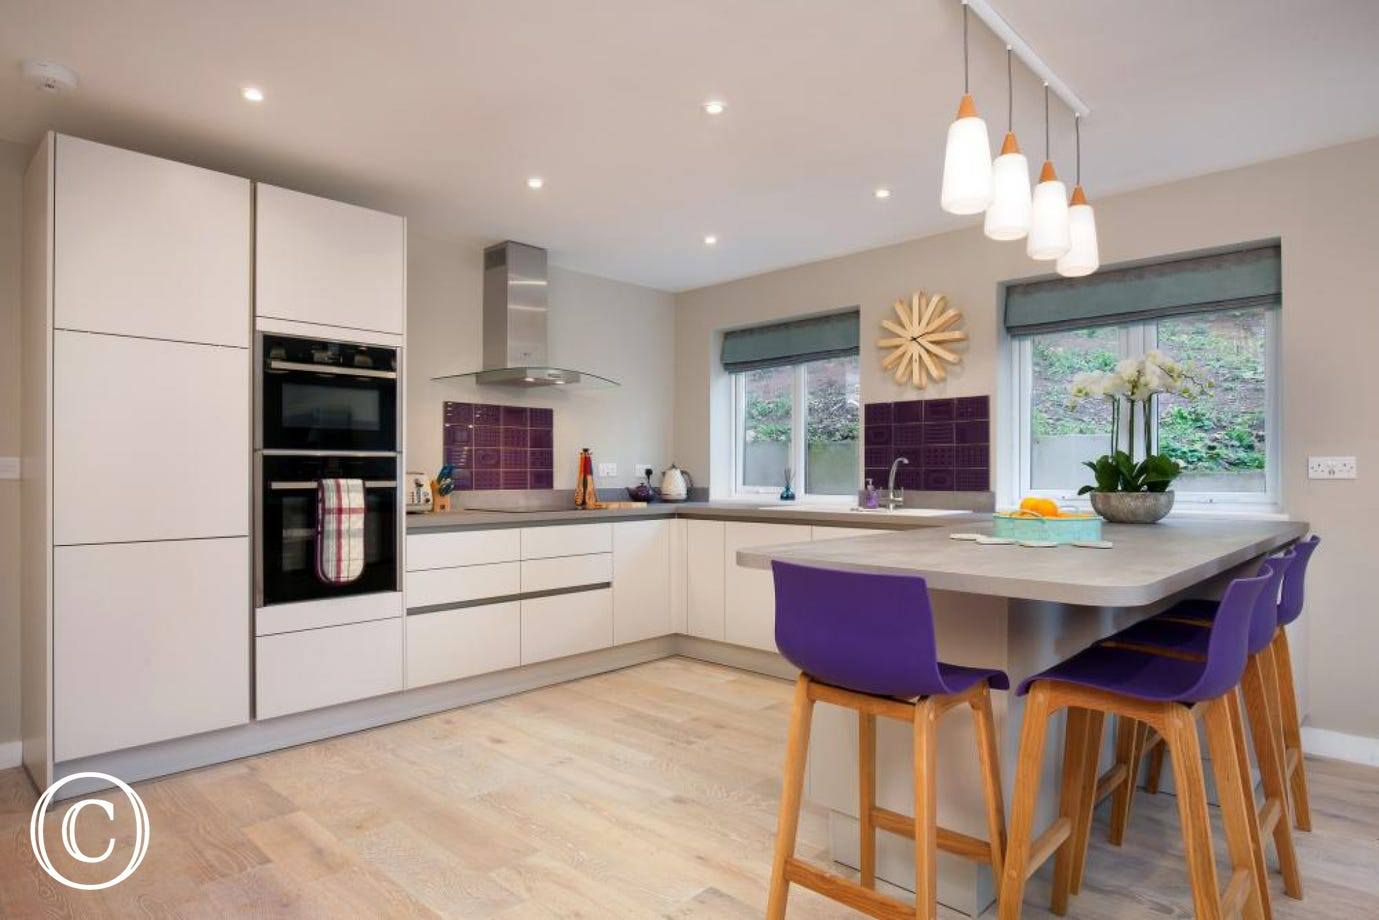 Super stylish kitchen with breakfast bar seating